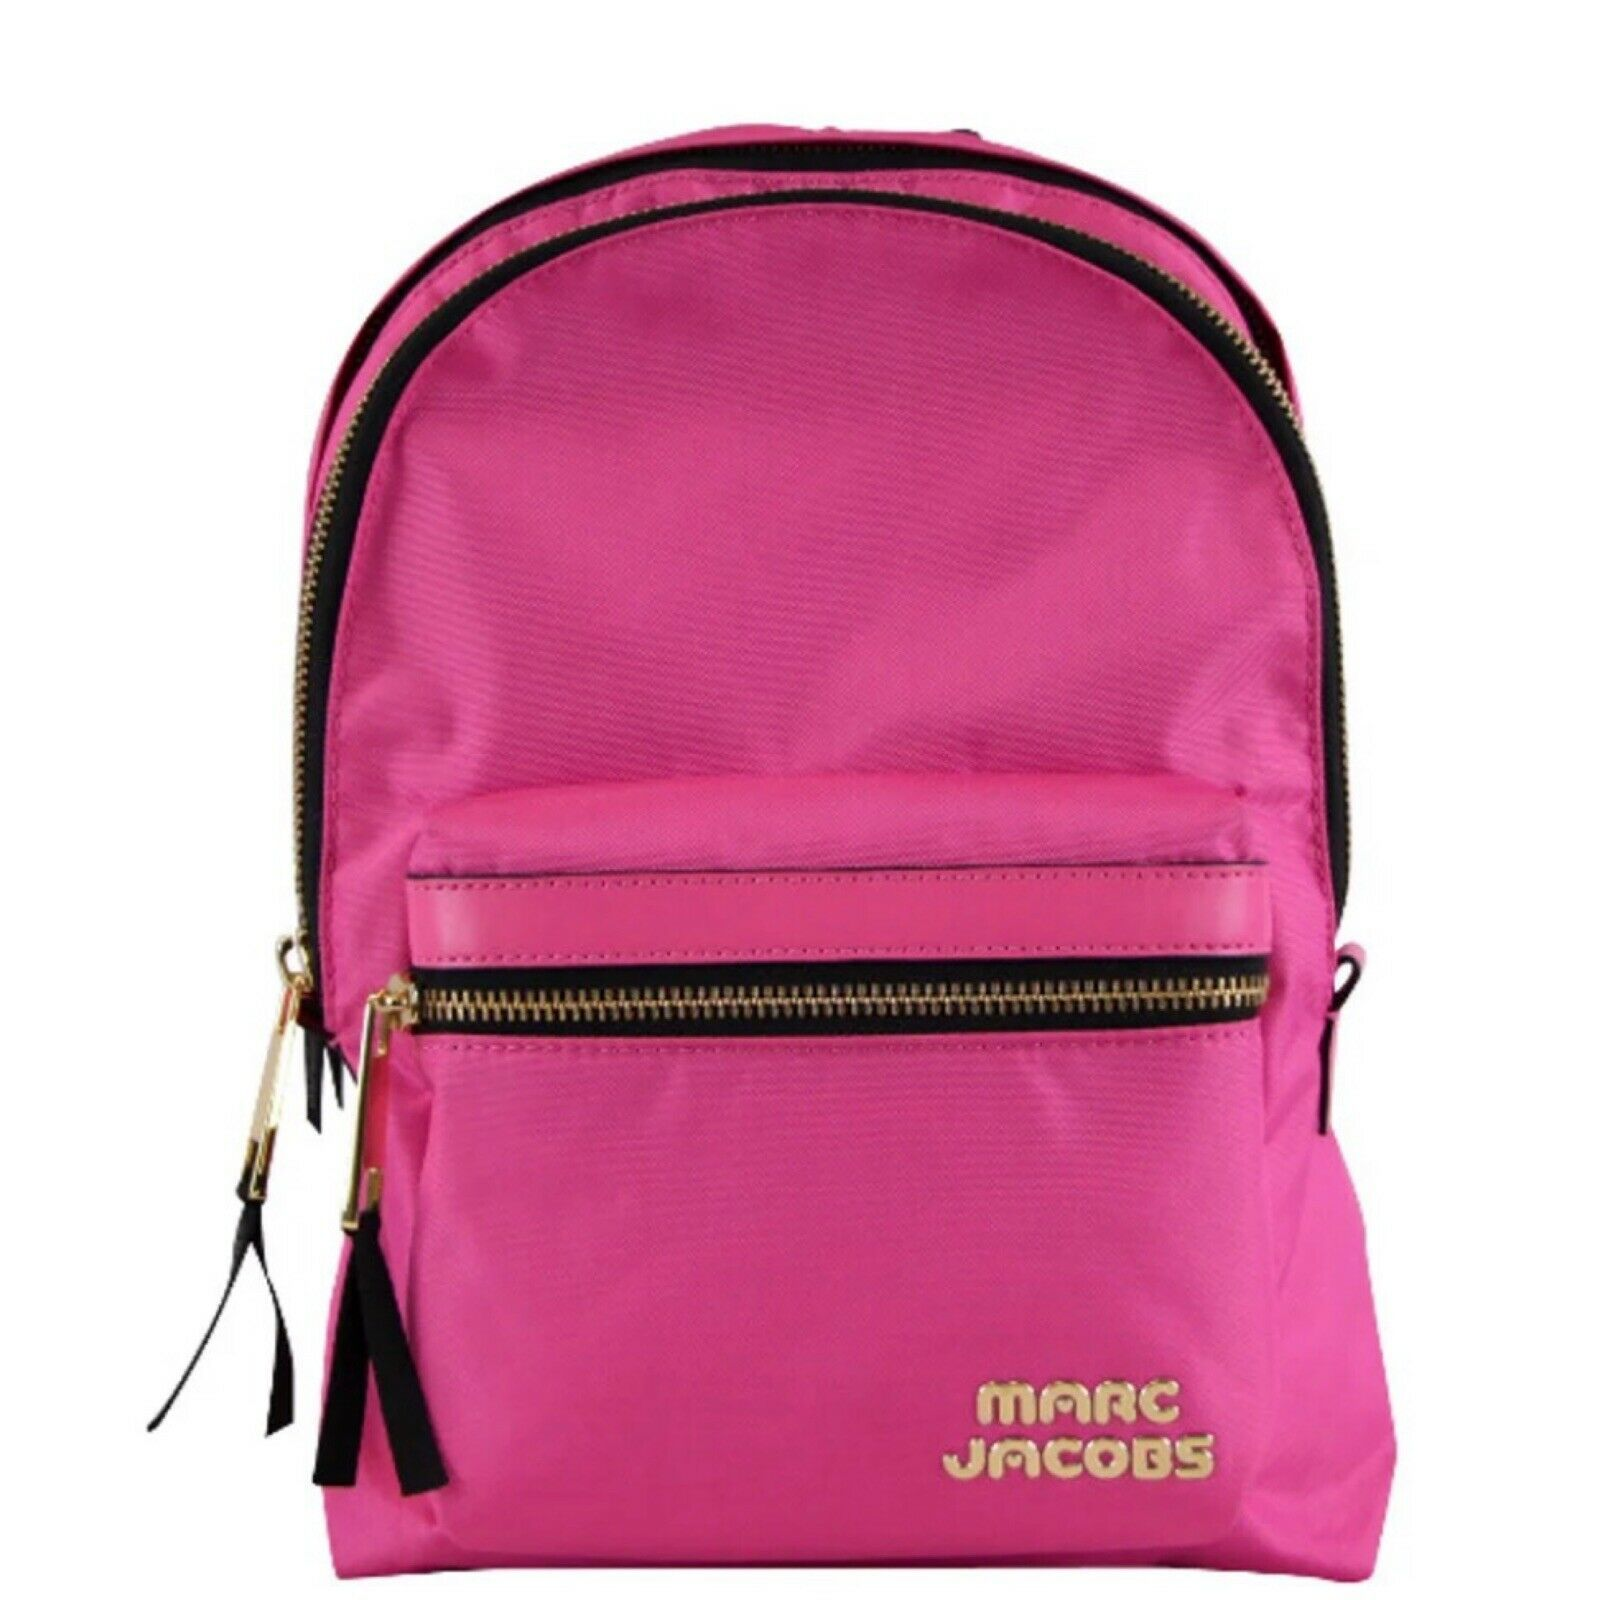 Primary image for NWT Marc Jacobs Trek Pack Medium Nylon Backpack Vivid Pink M0014031 $195